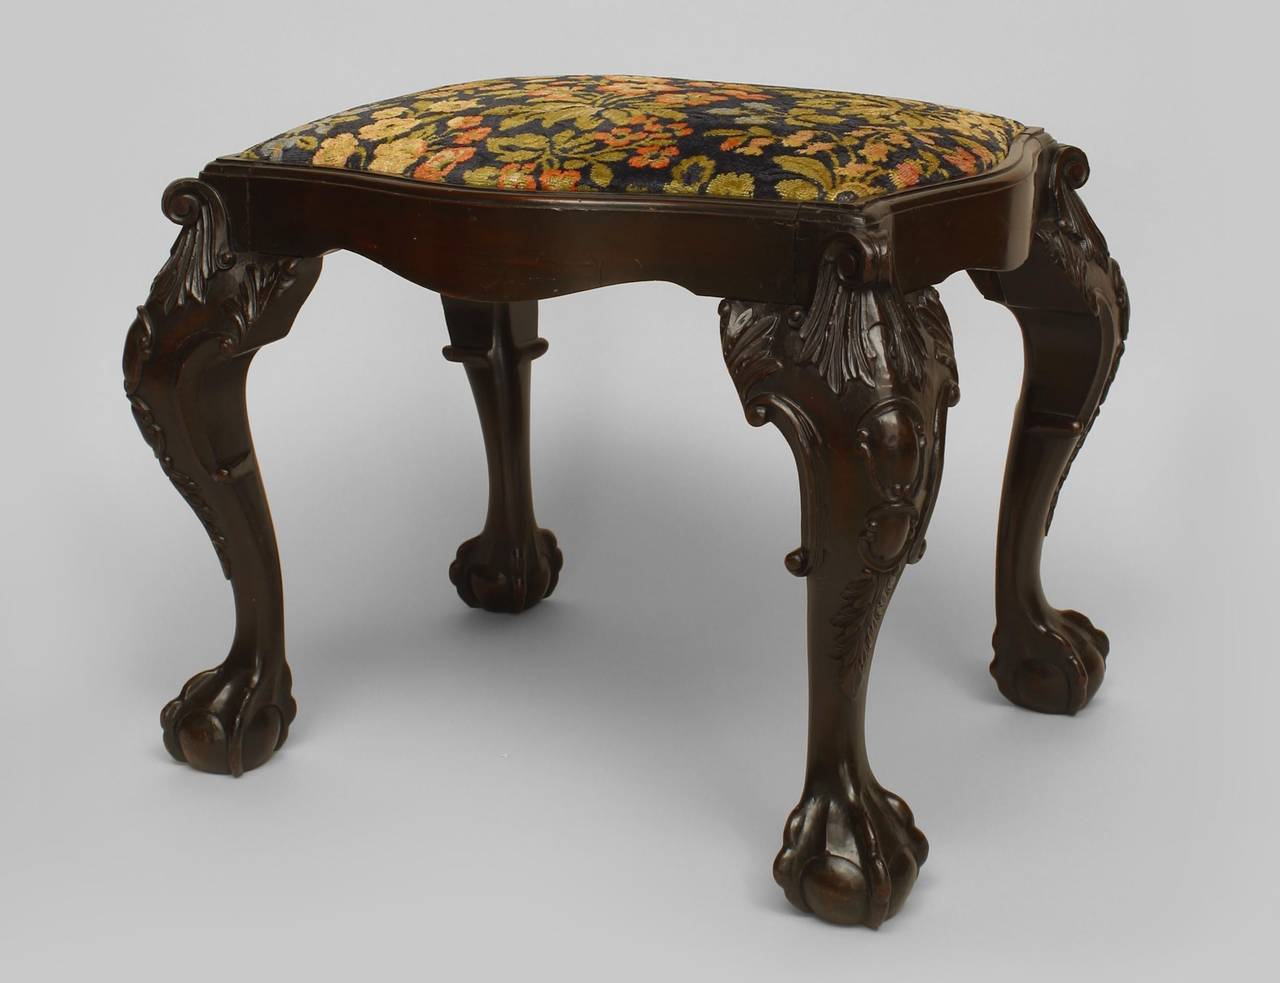 Turn Of The Century English Chippendale Style Mahogany Bench For Sale At 1stdibs